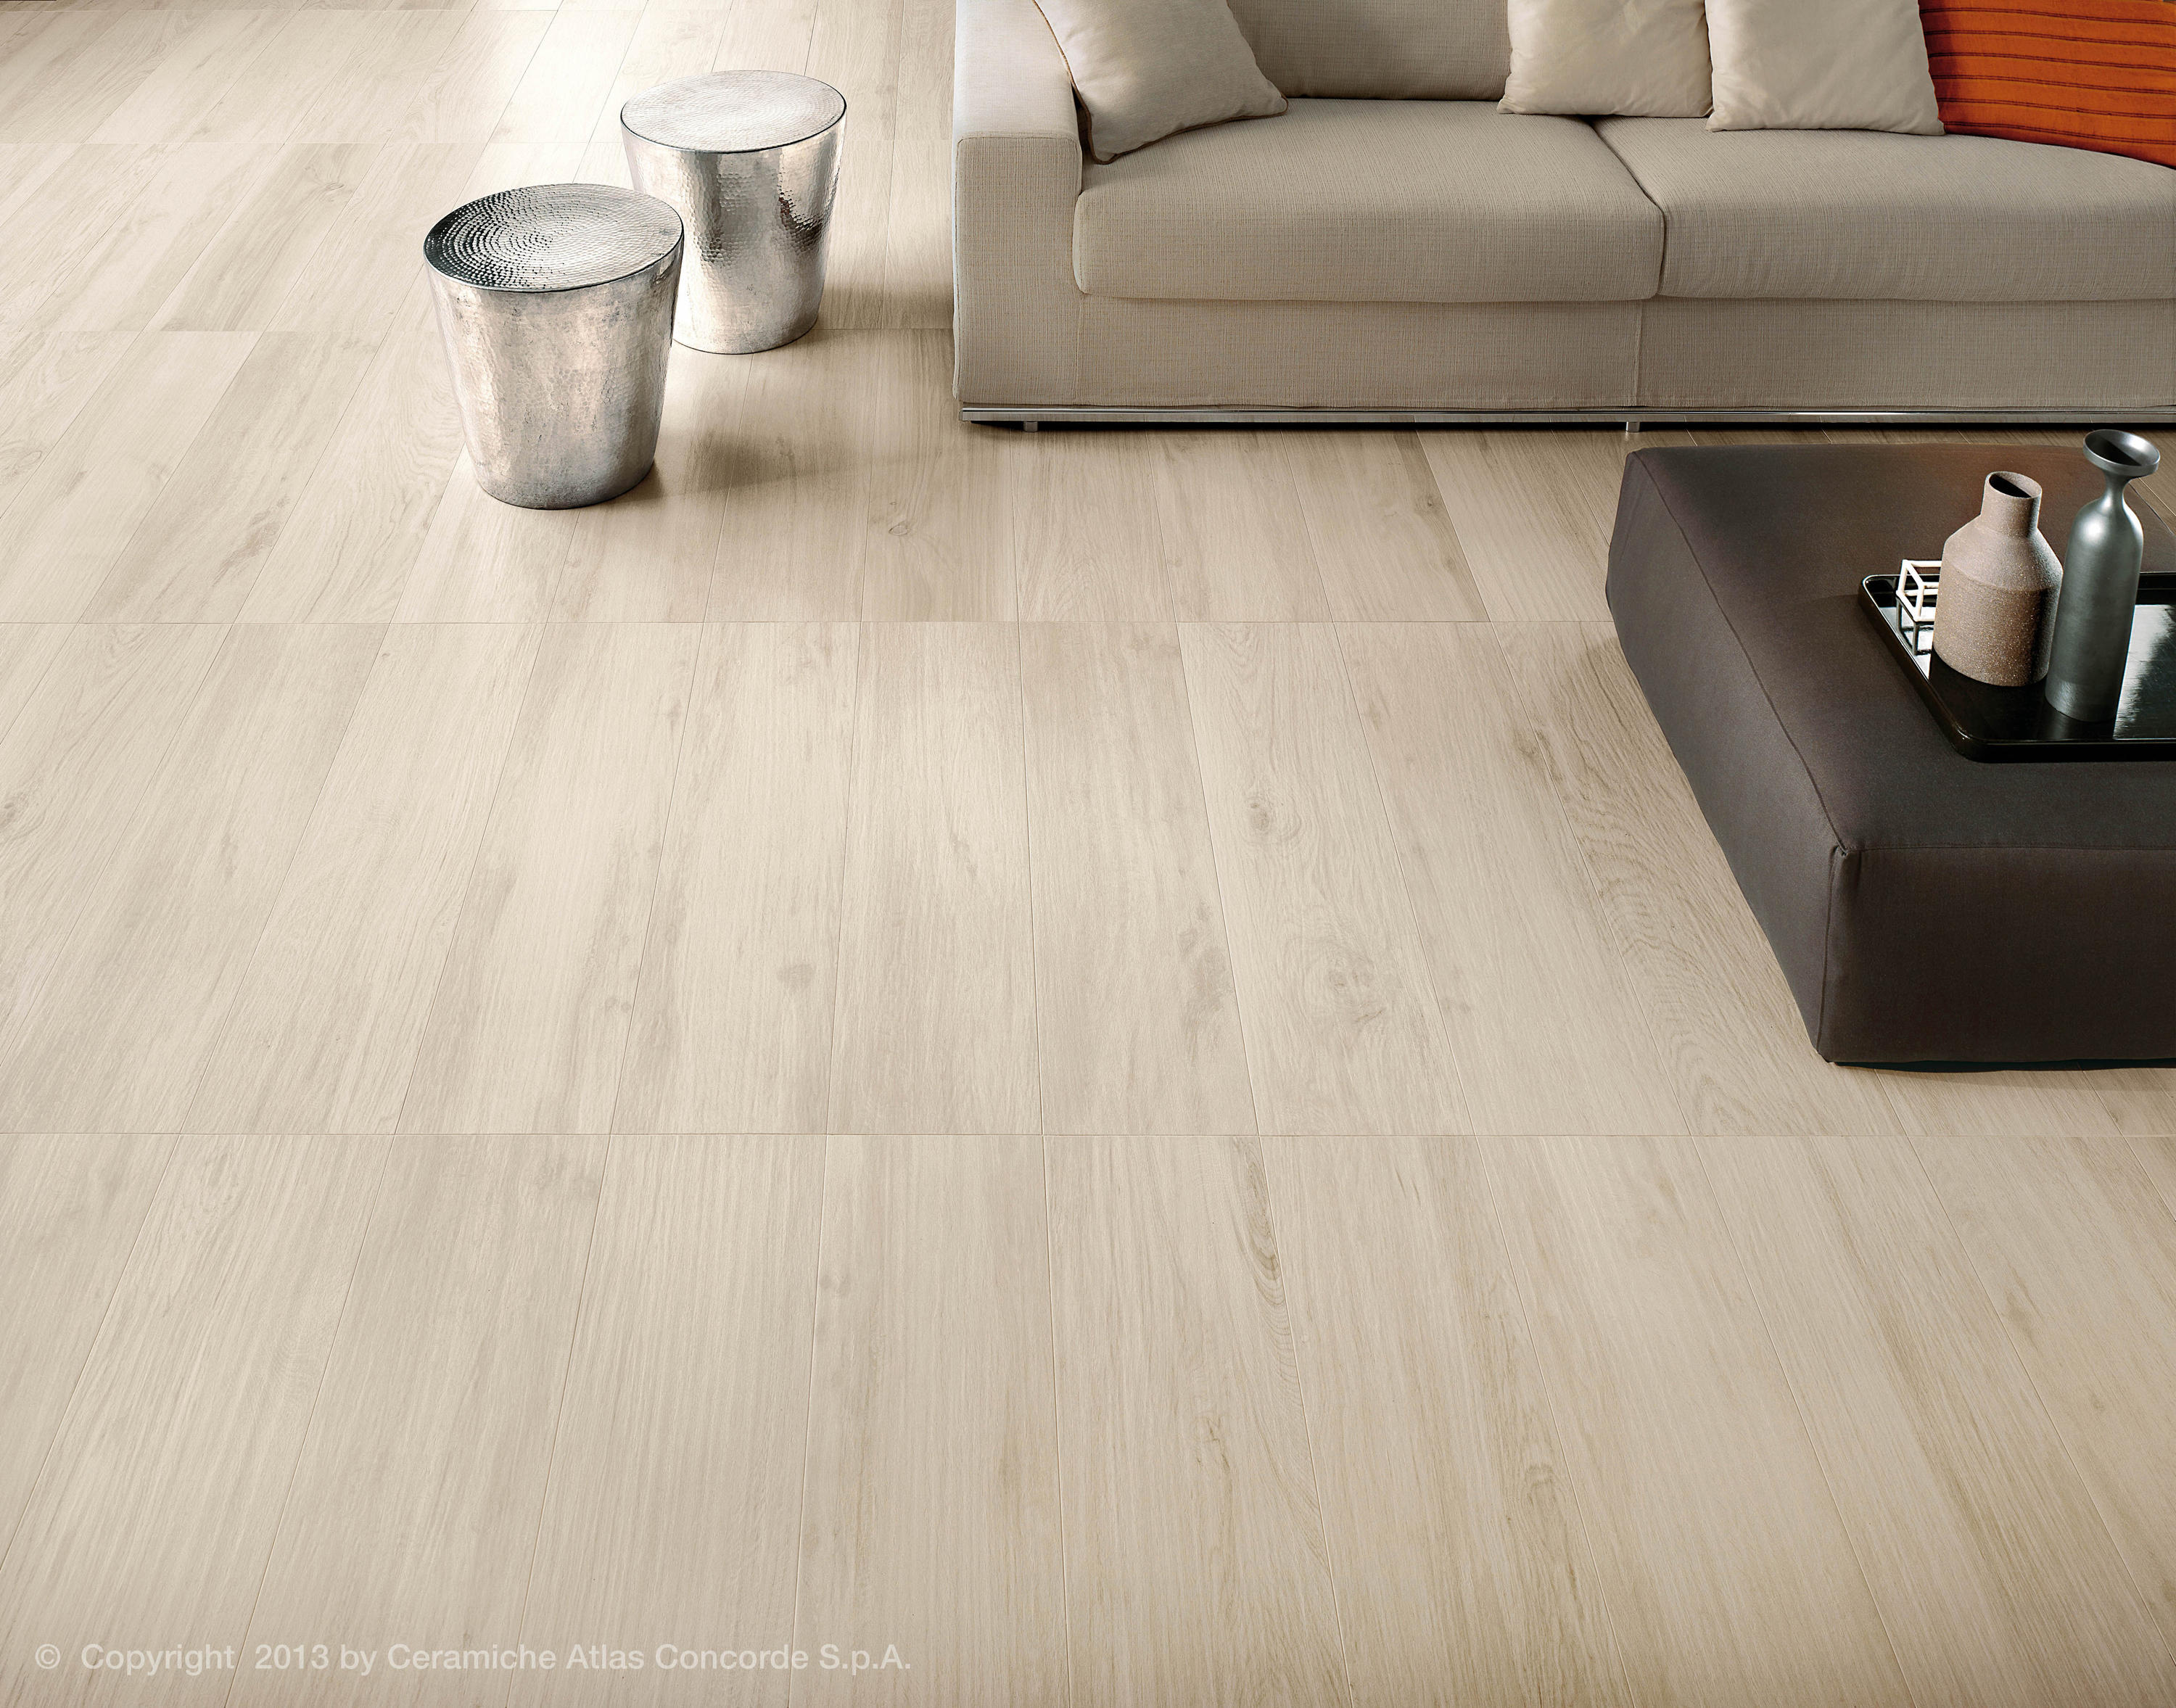 abbastanza ETIC ROVERE - Floor tiles from Atlas Concorde | Architonic ZV99